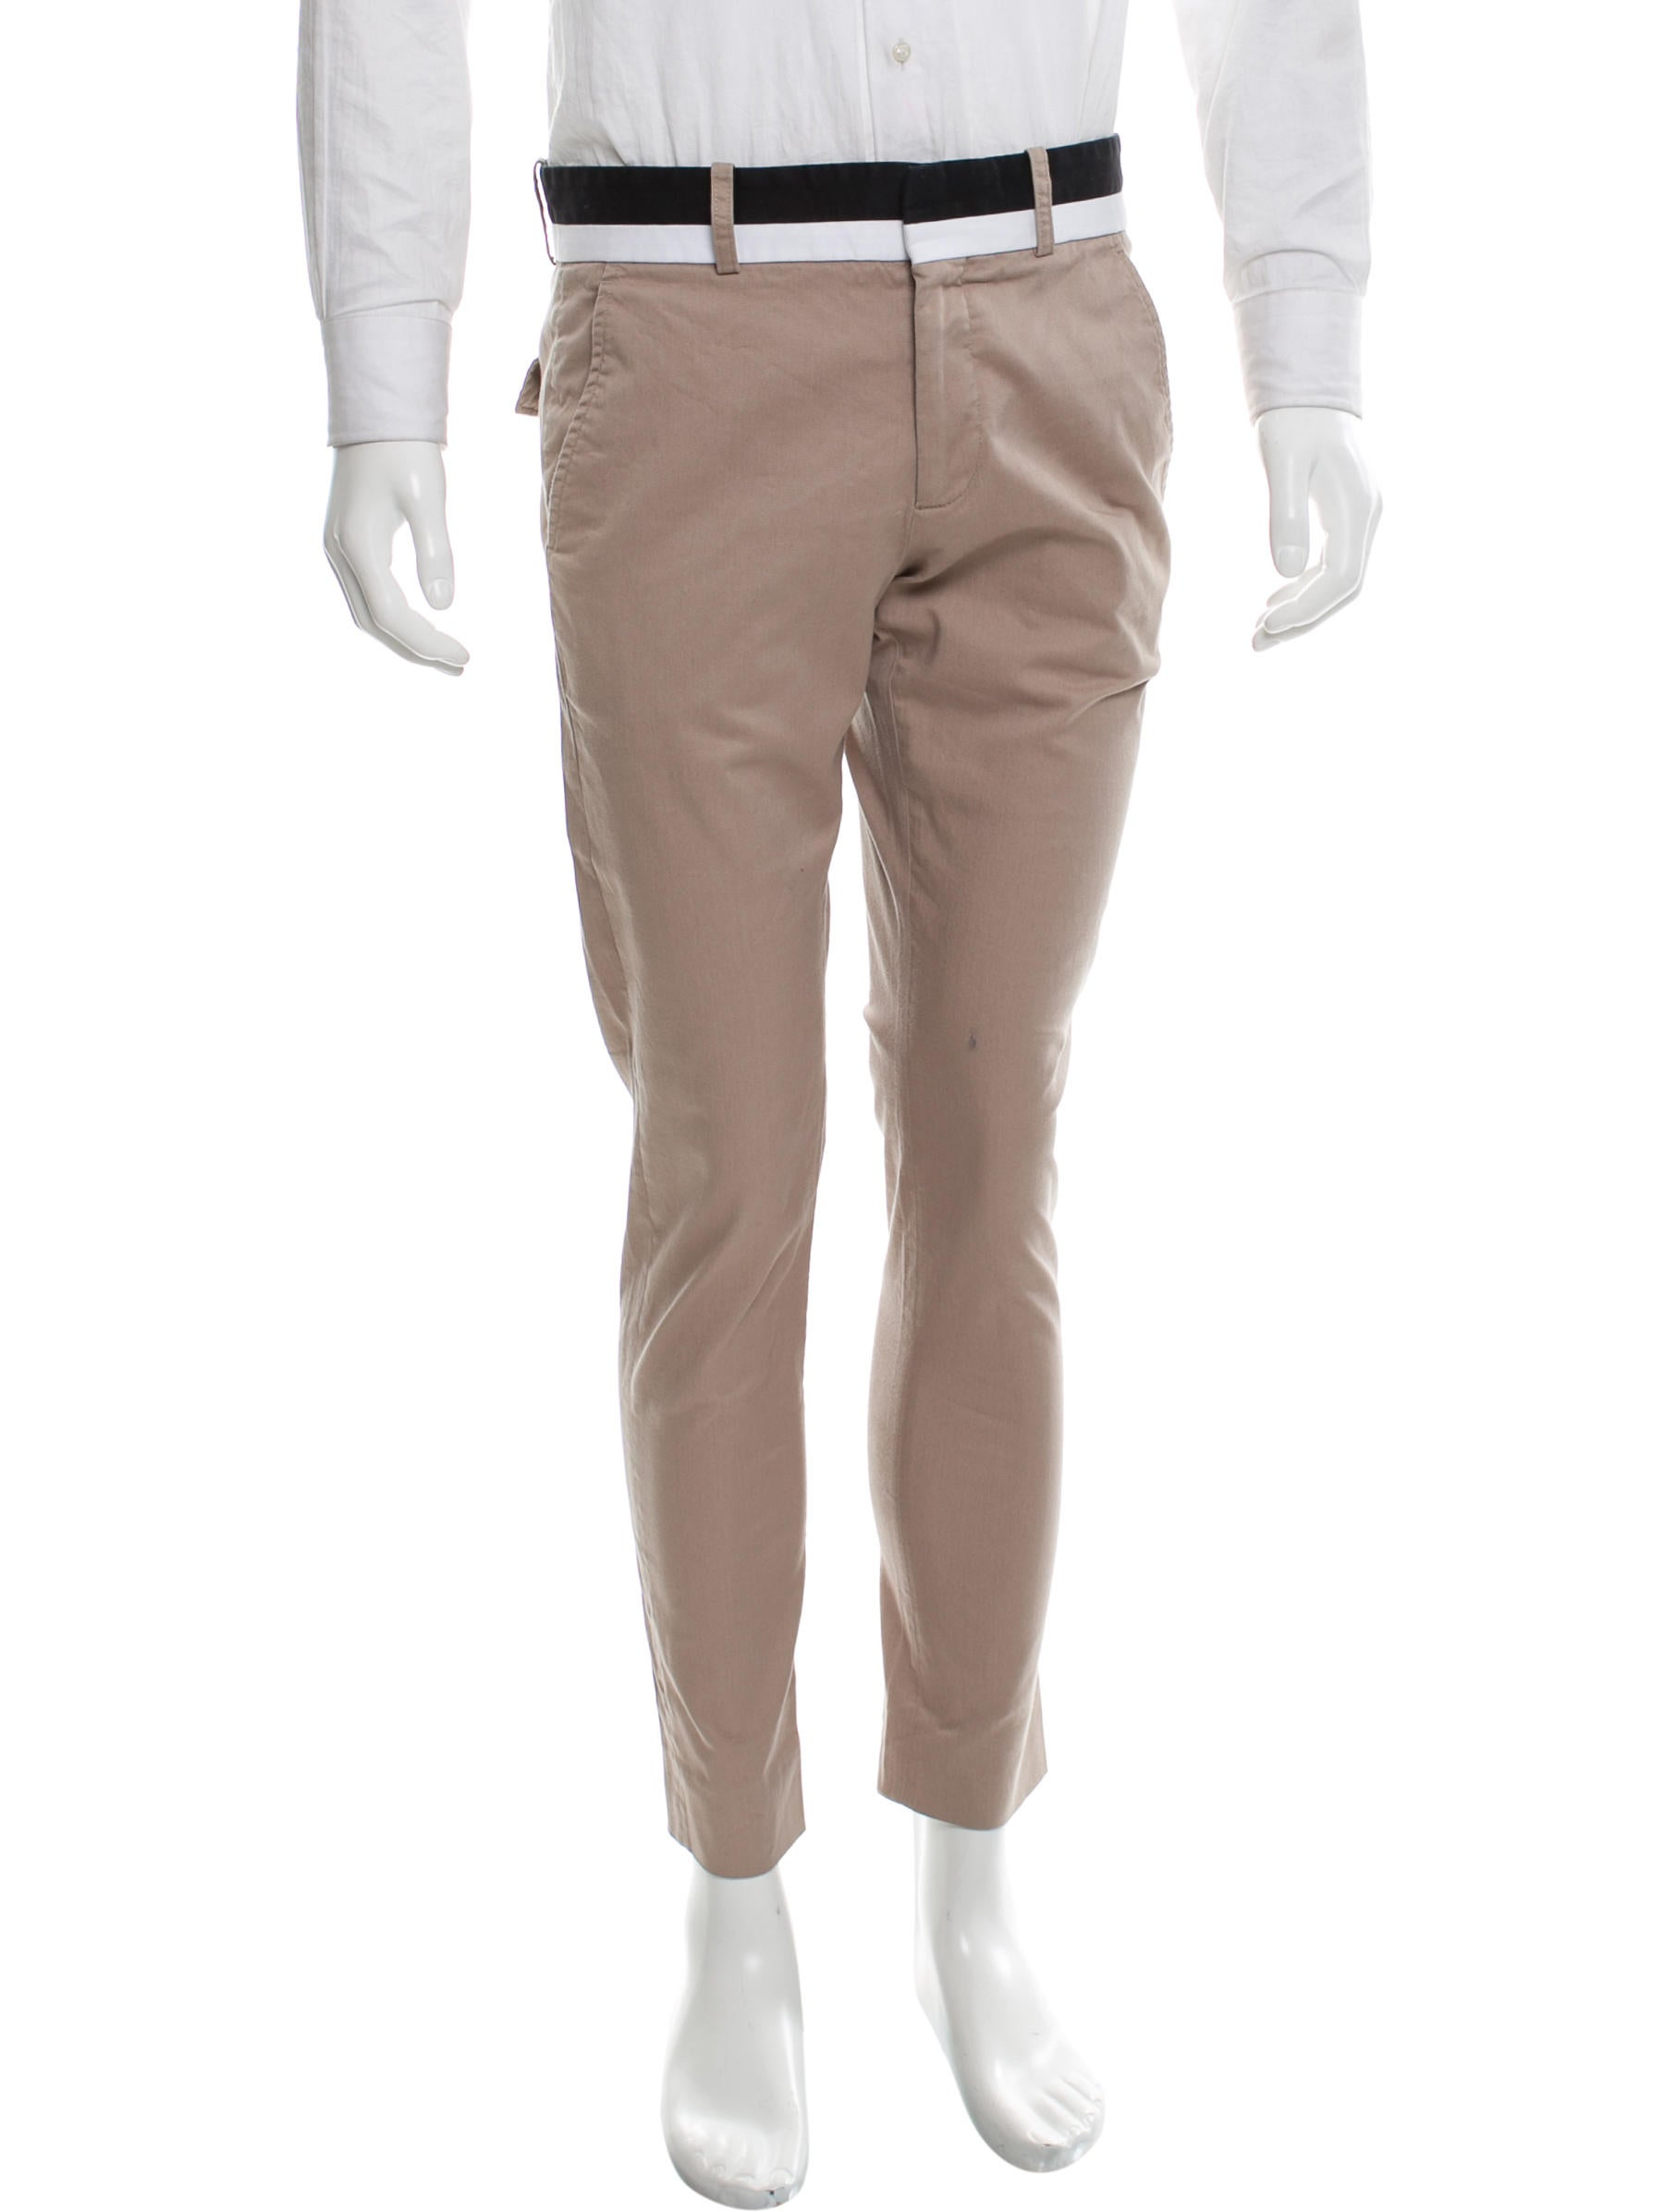 Gucci Contrast Skinny Pants - Clothing - GUC144413 | The RealReal